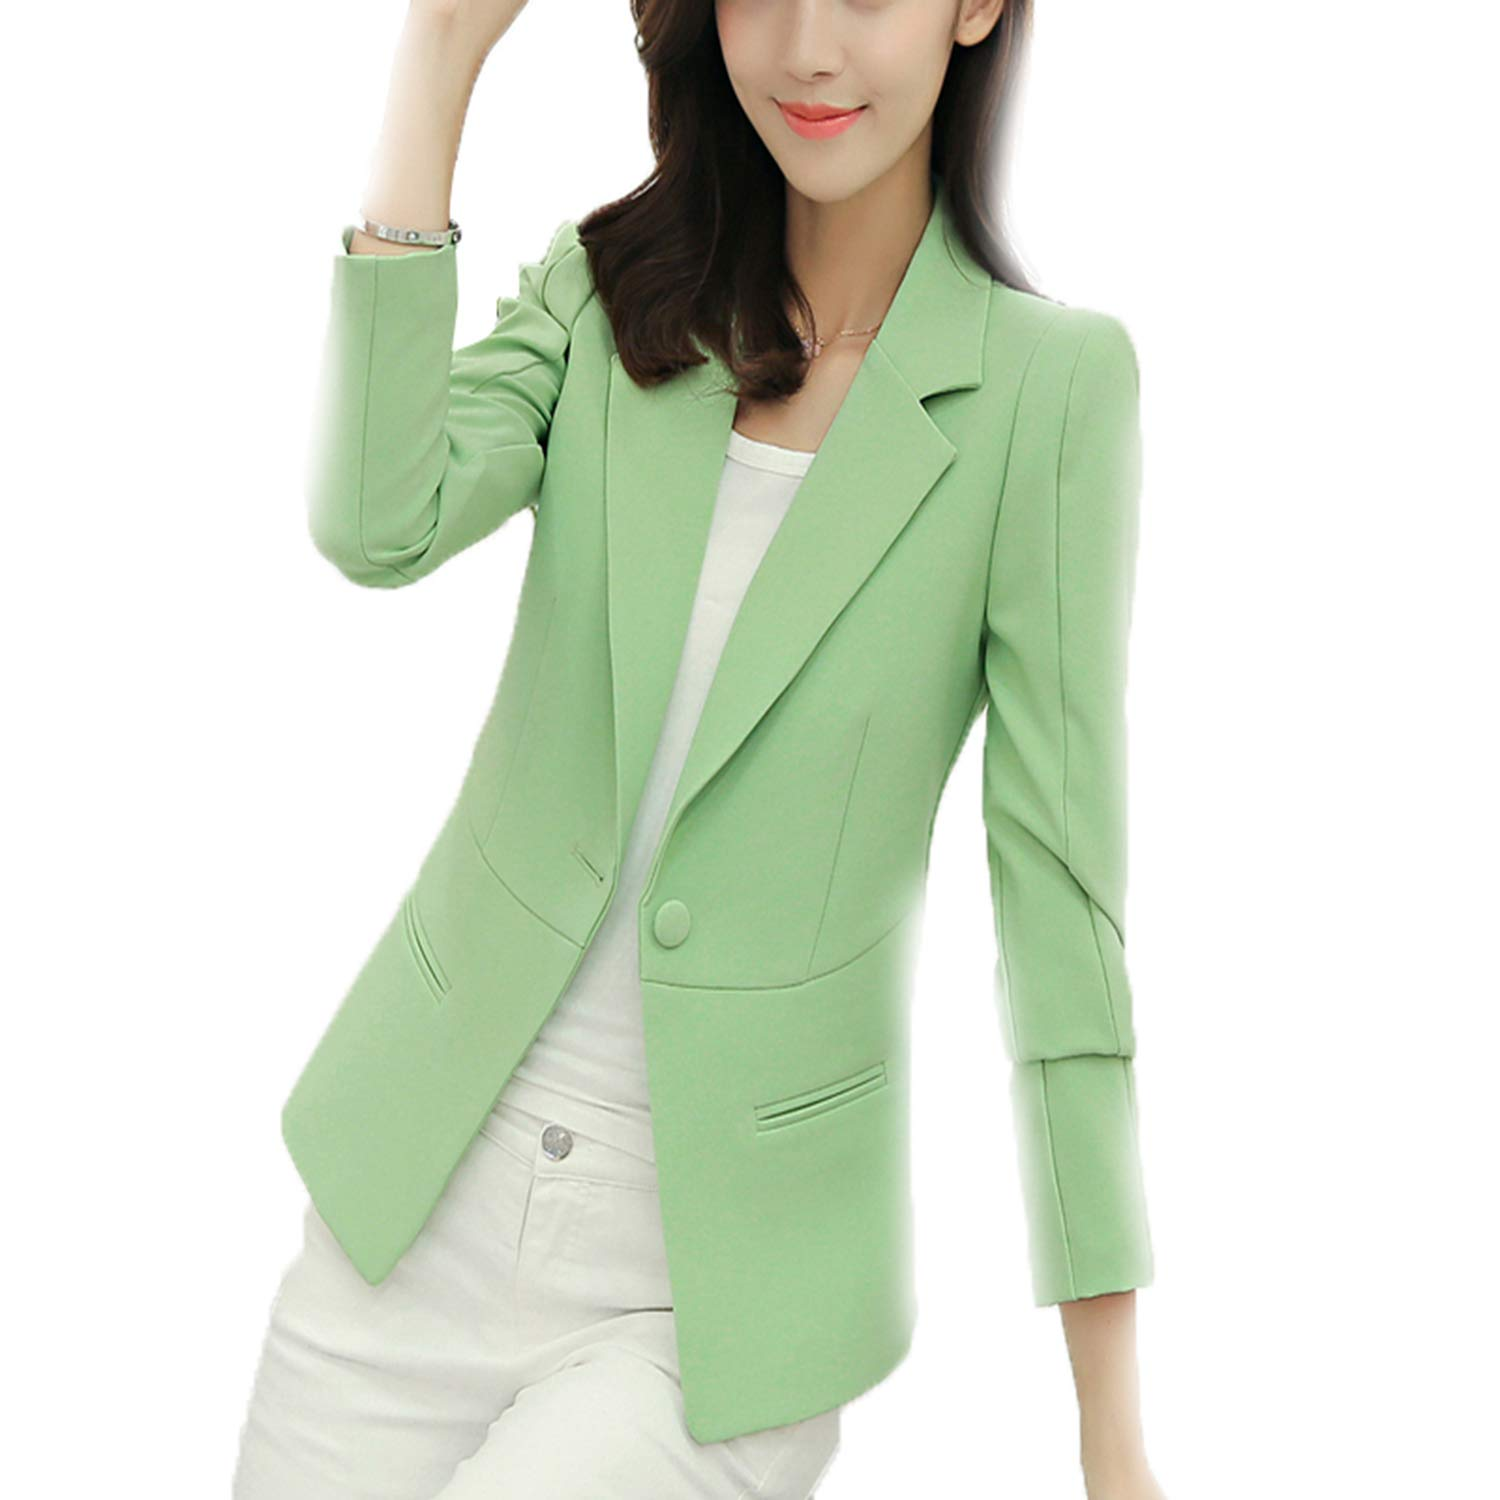 Molif Ladies Blazer Long Sleeve Blaser Women Suit Jacket Blazer Femme Pink Blazer Autumn Green R133 M